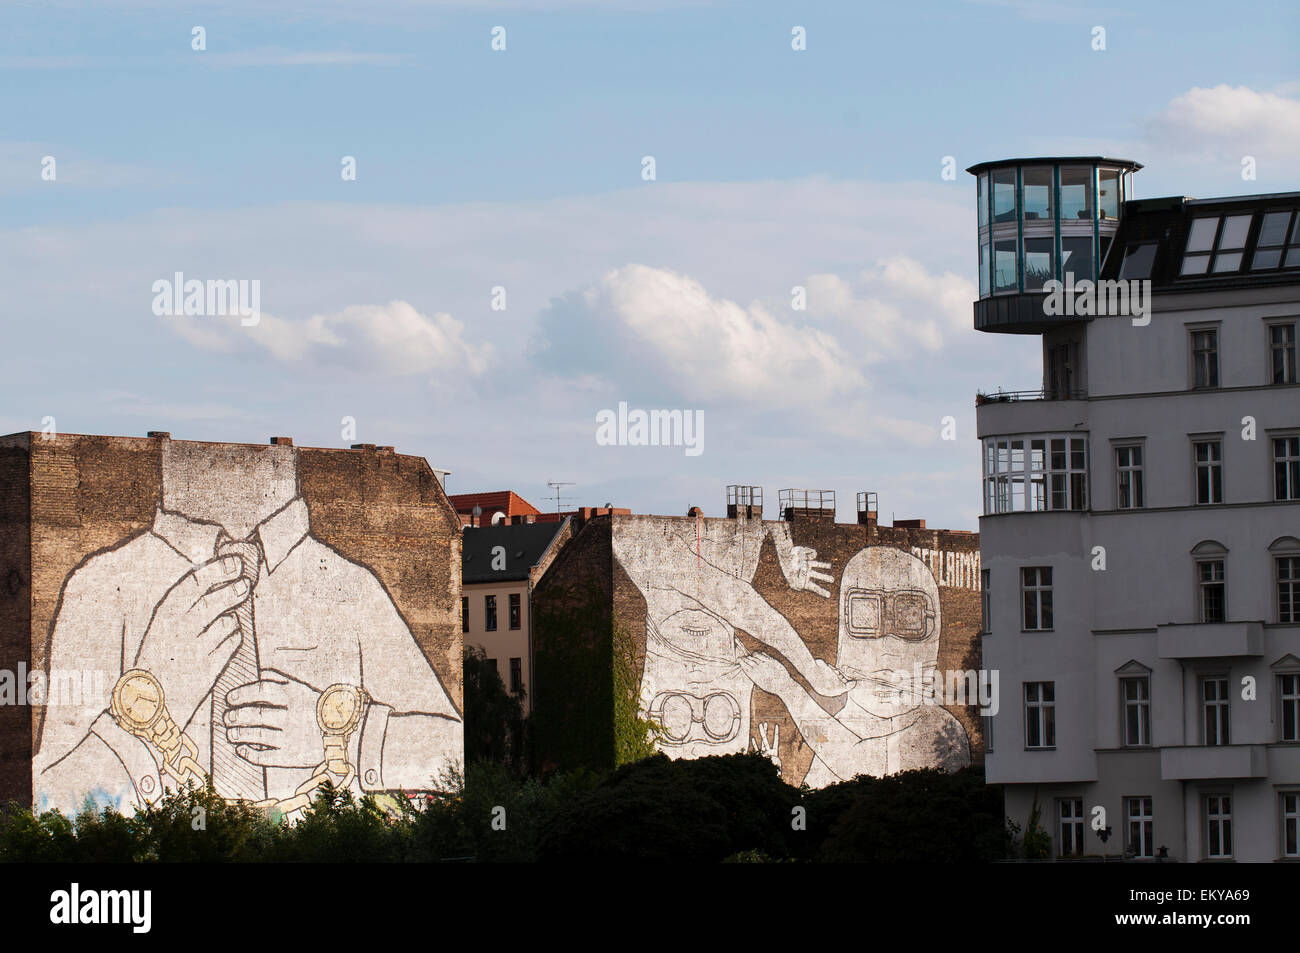 Modern apartment in an old warehouse on the Spree River overlooks street art by BLU. - Stock Image